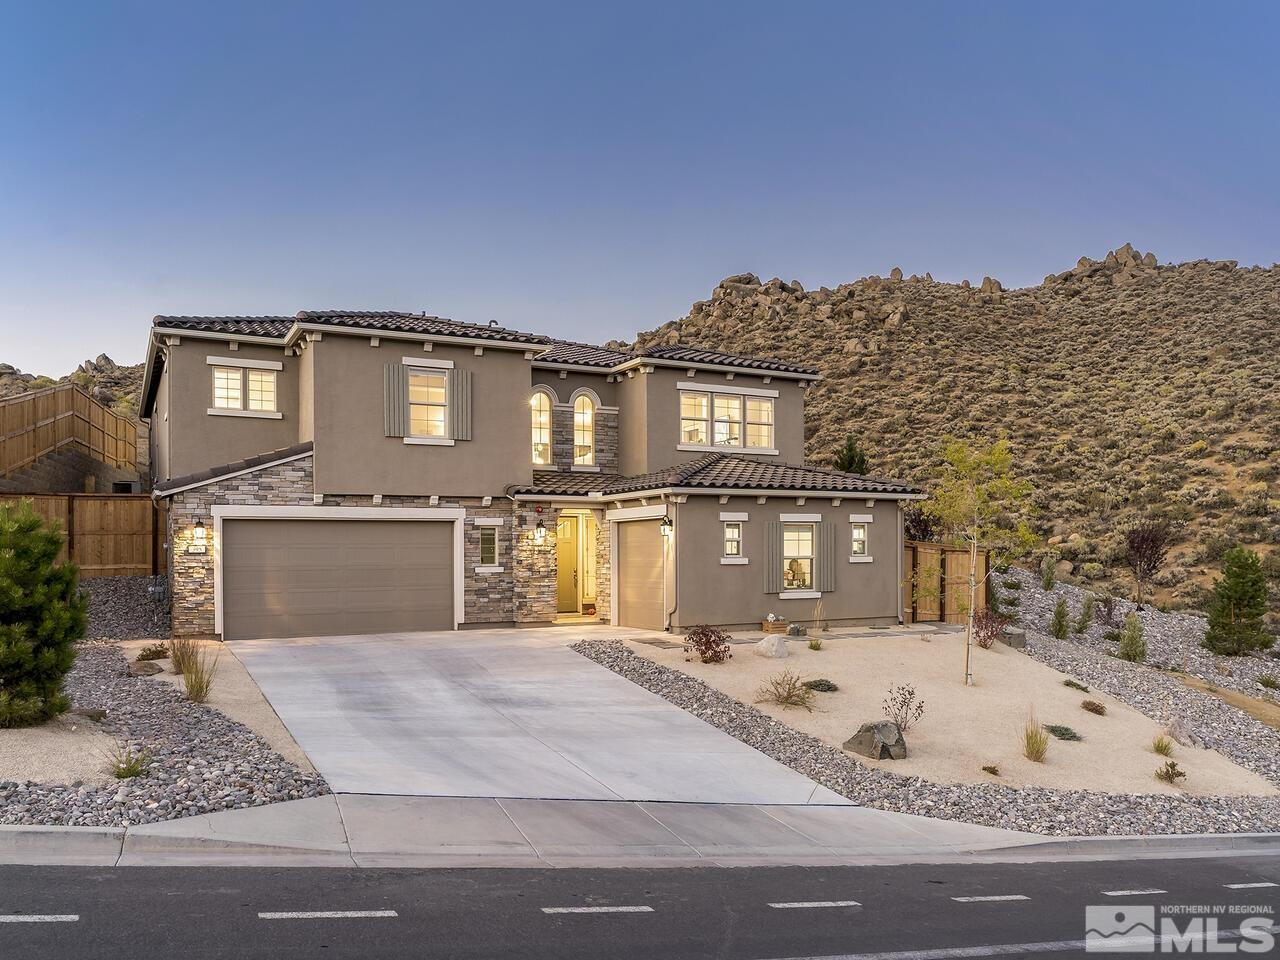 Image for 395 Gooseberry Drive, Reno, NV 89523-9748